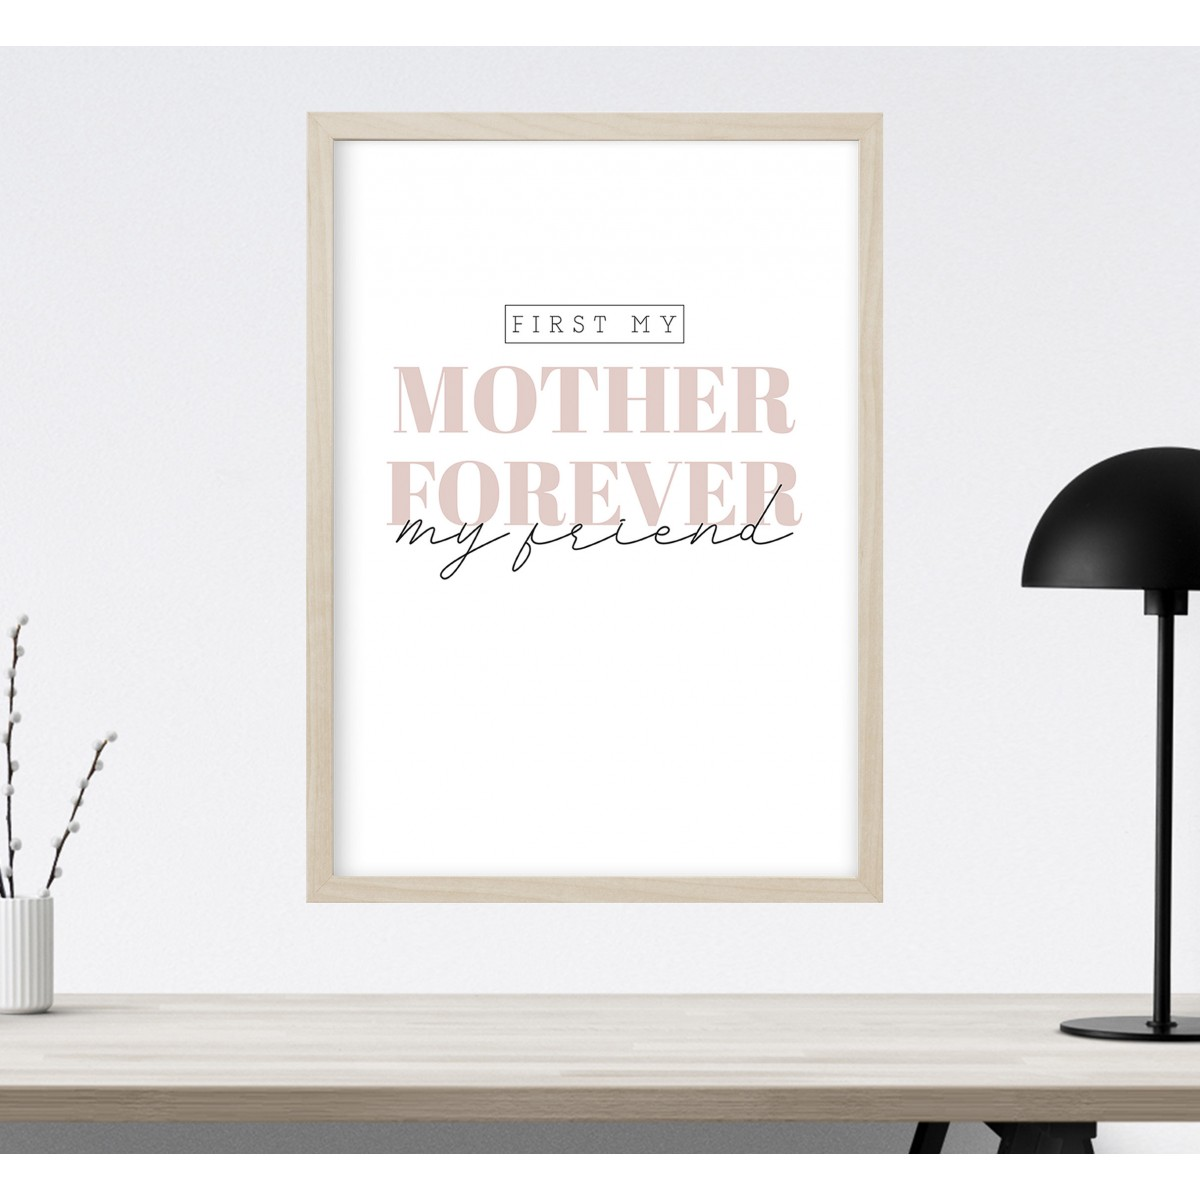 Kruth Design POSTER / MOTHER FOREVER